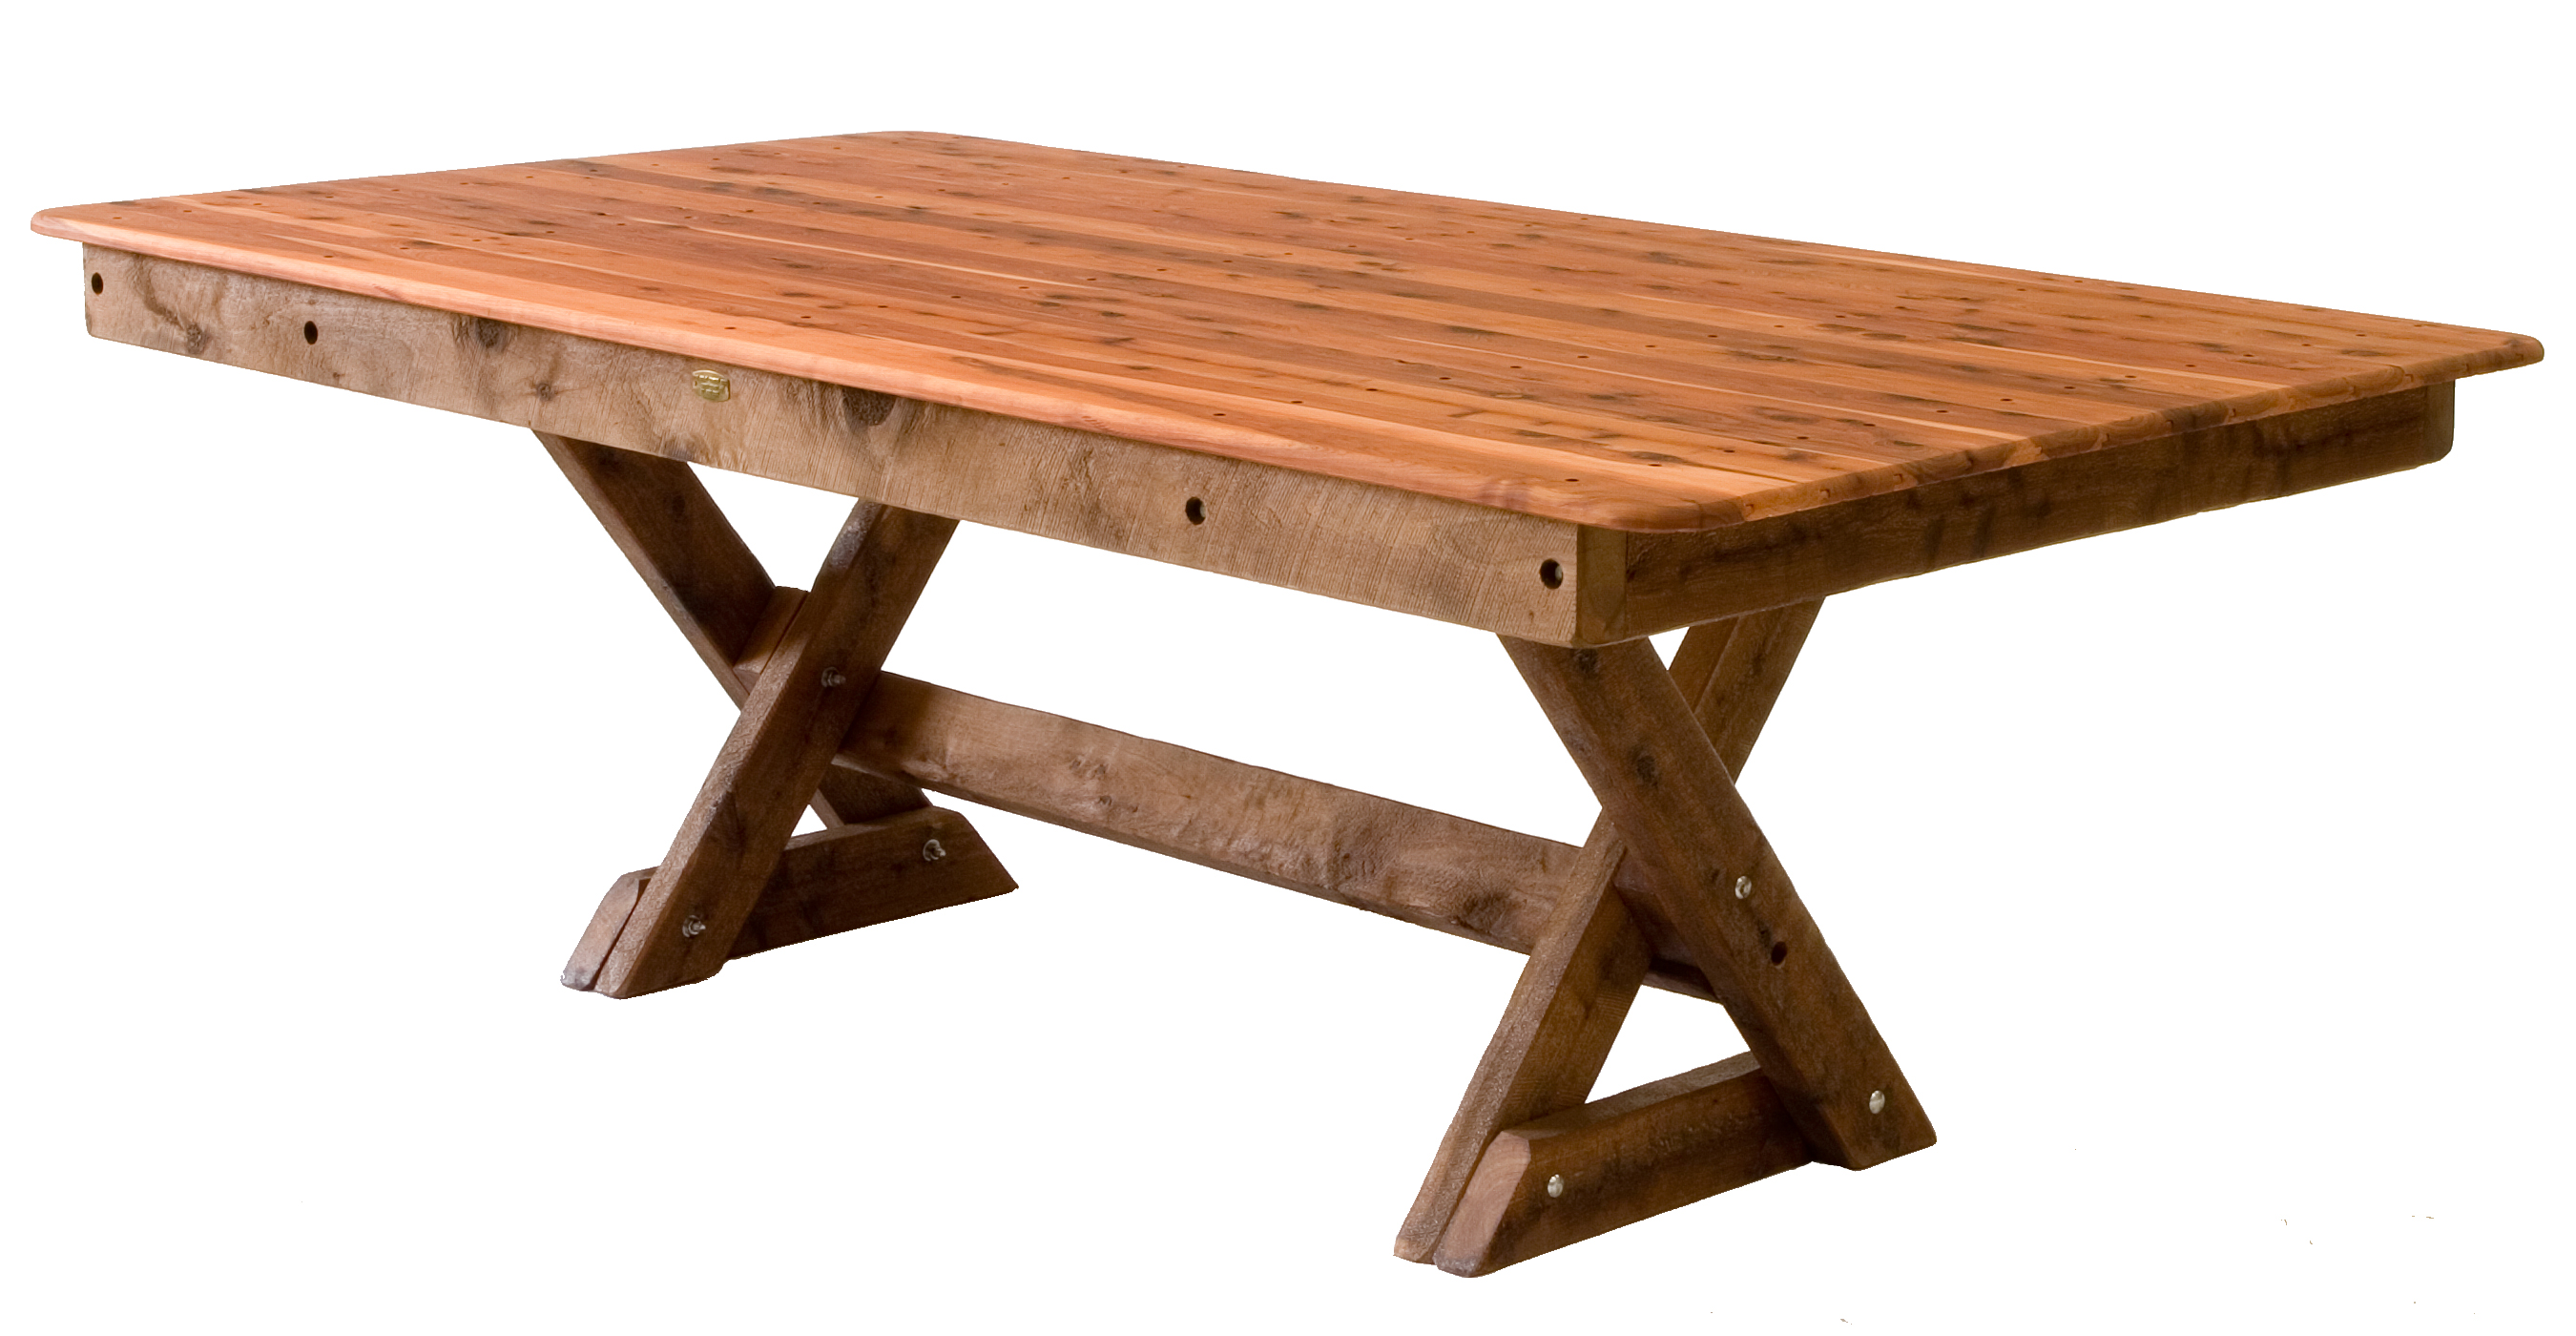 Four seat backless cypress outdoor timber